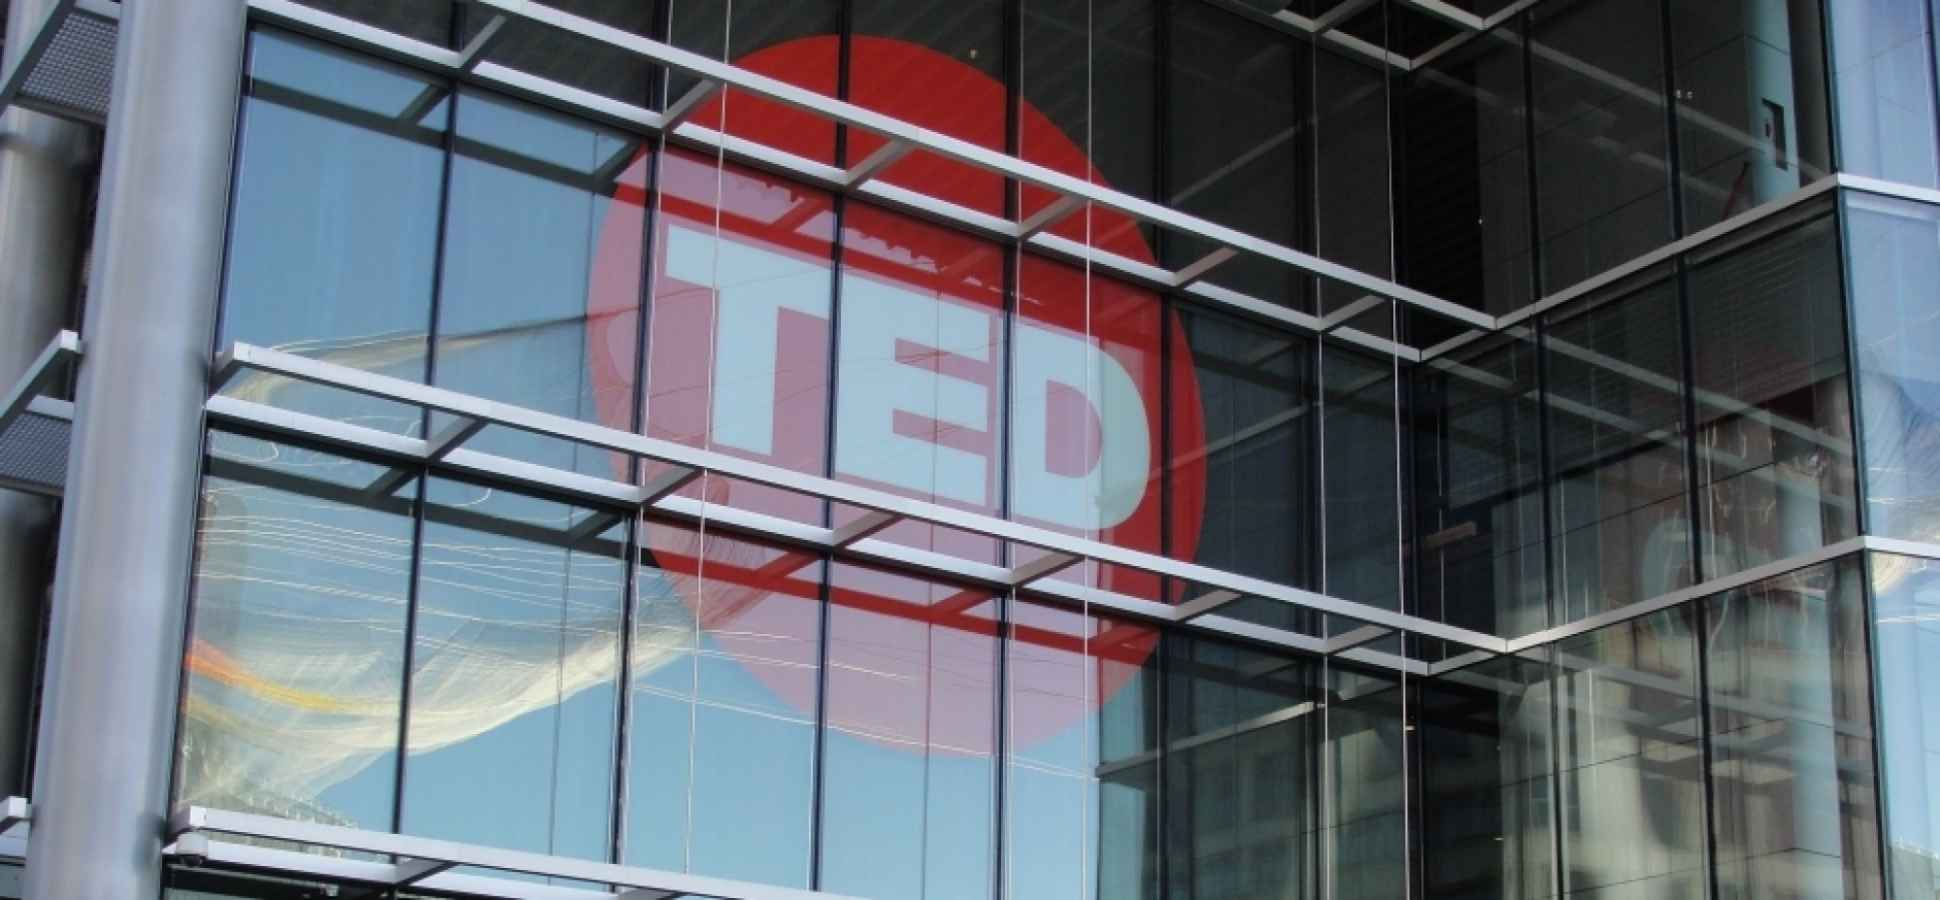 The 7 Ted Talks every leader should watch.